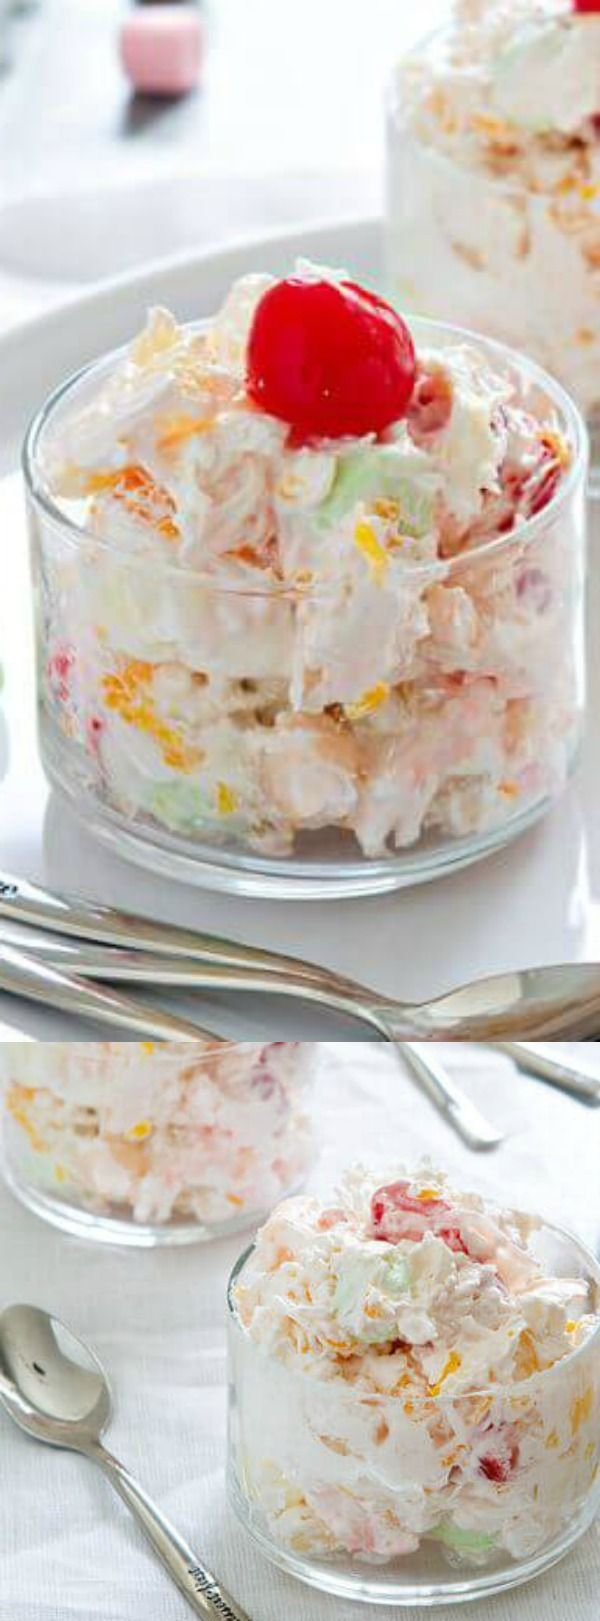 This Ambrosia Salad recipe from My Baking Addiction is a deliciously creamy fruit salad that is loaded with pineapple, mandarin oranges, coconut and miniature fruit-flavored marshmallows!